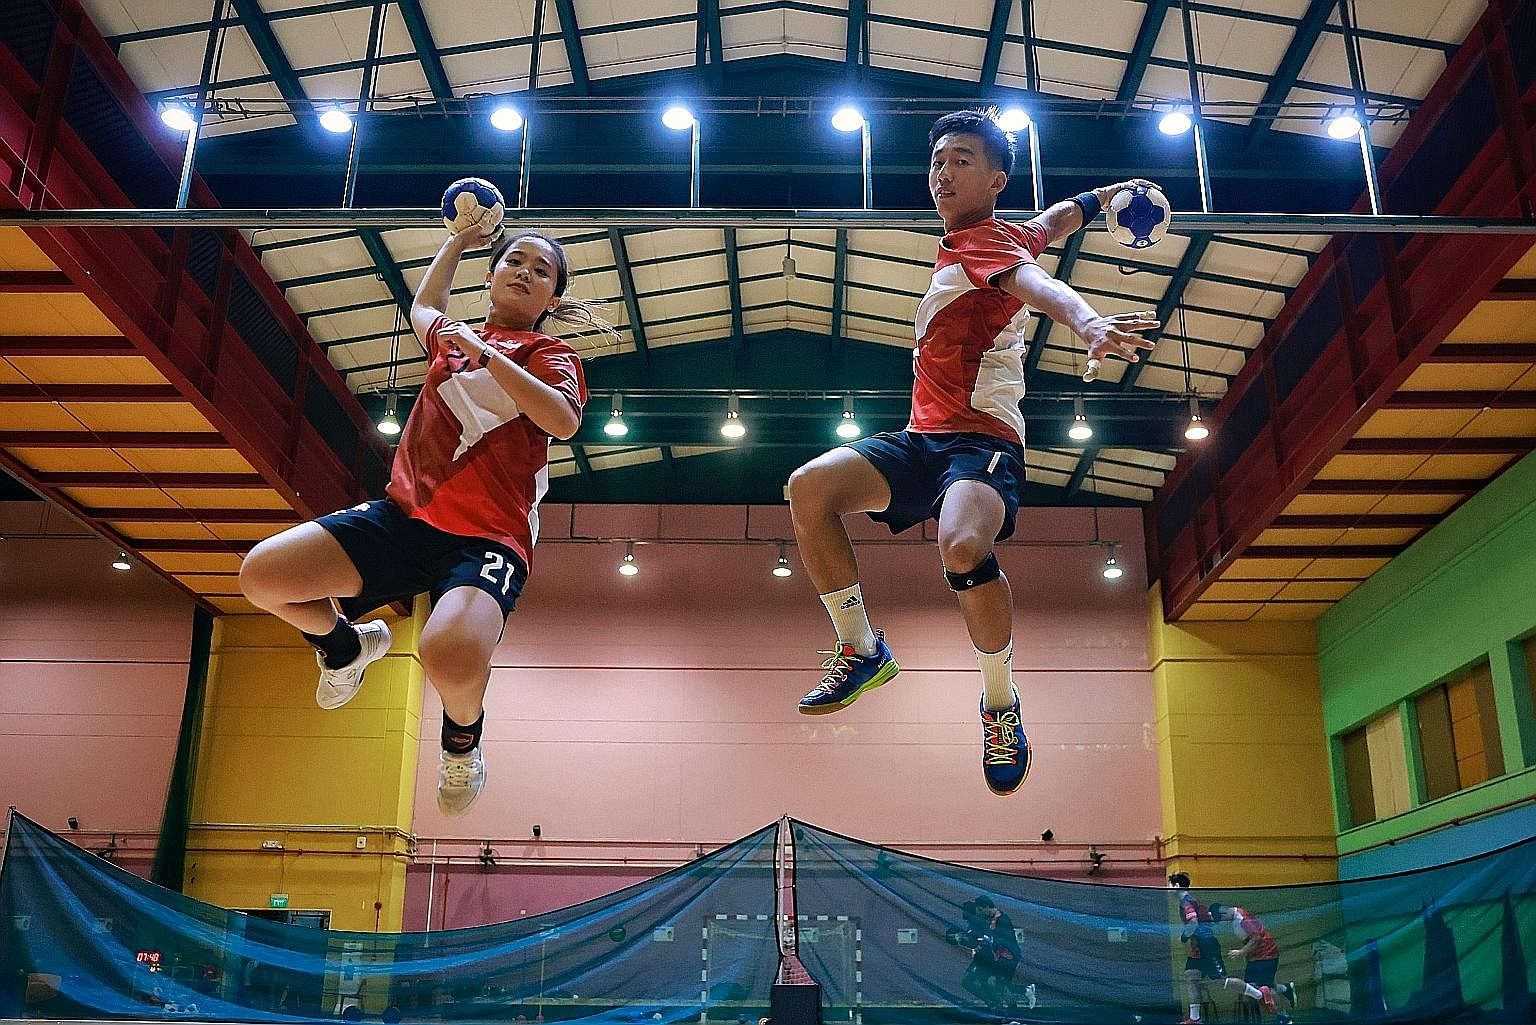 National handballer Ham Jia Yun, 30, and men's captain Teo Kee Chong, 25, showing skill and agility in shooting during training. They have been playing the sport for about 10 years.